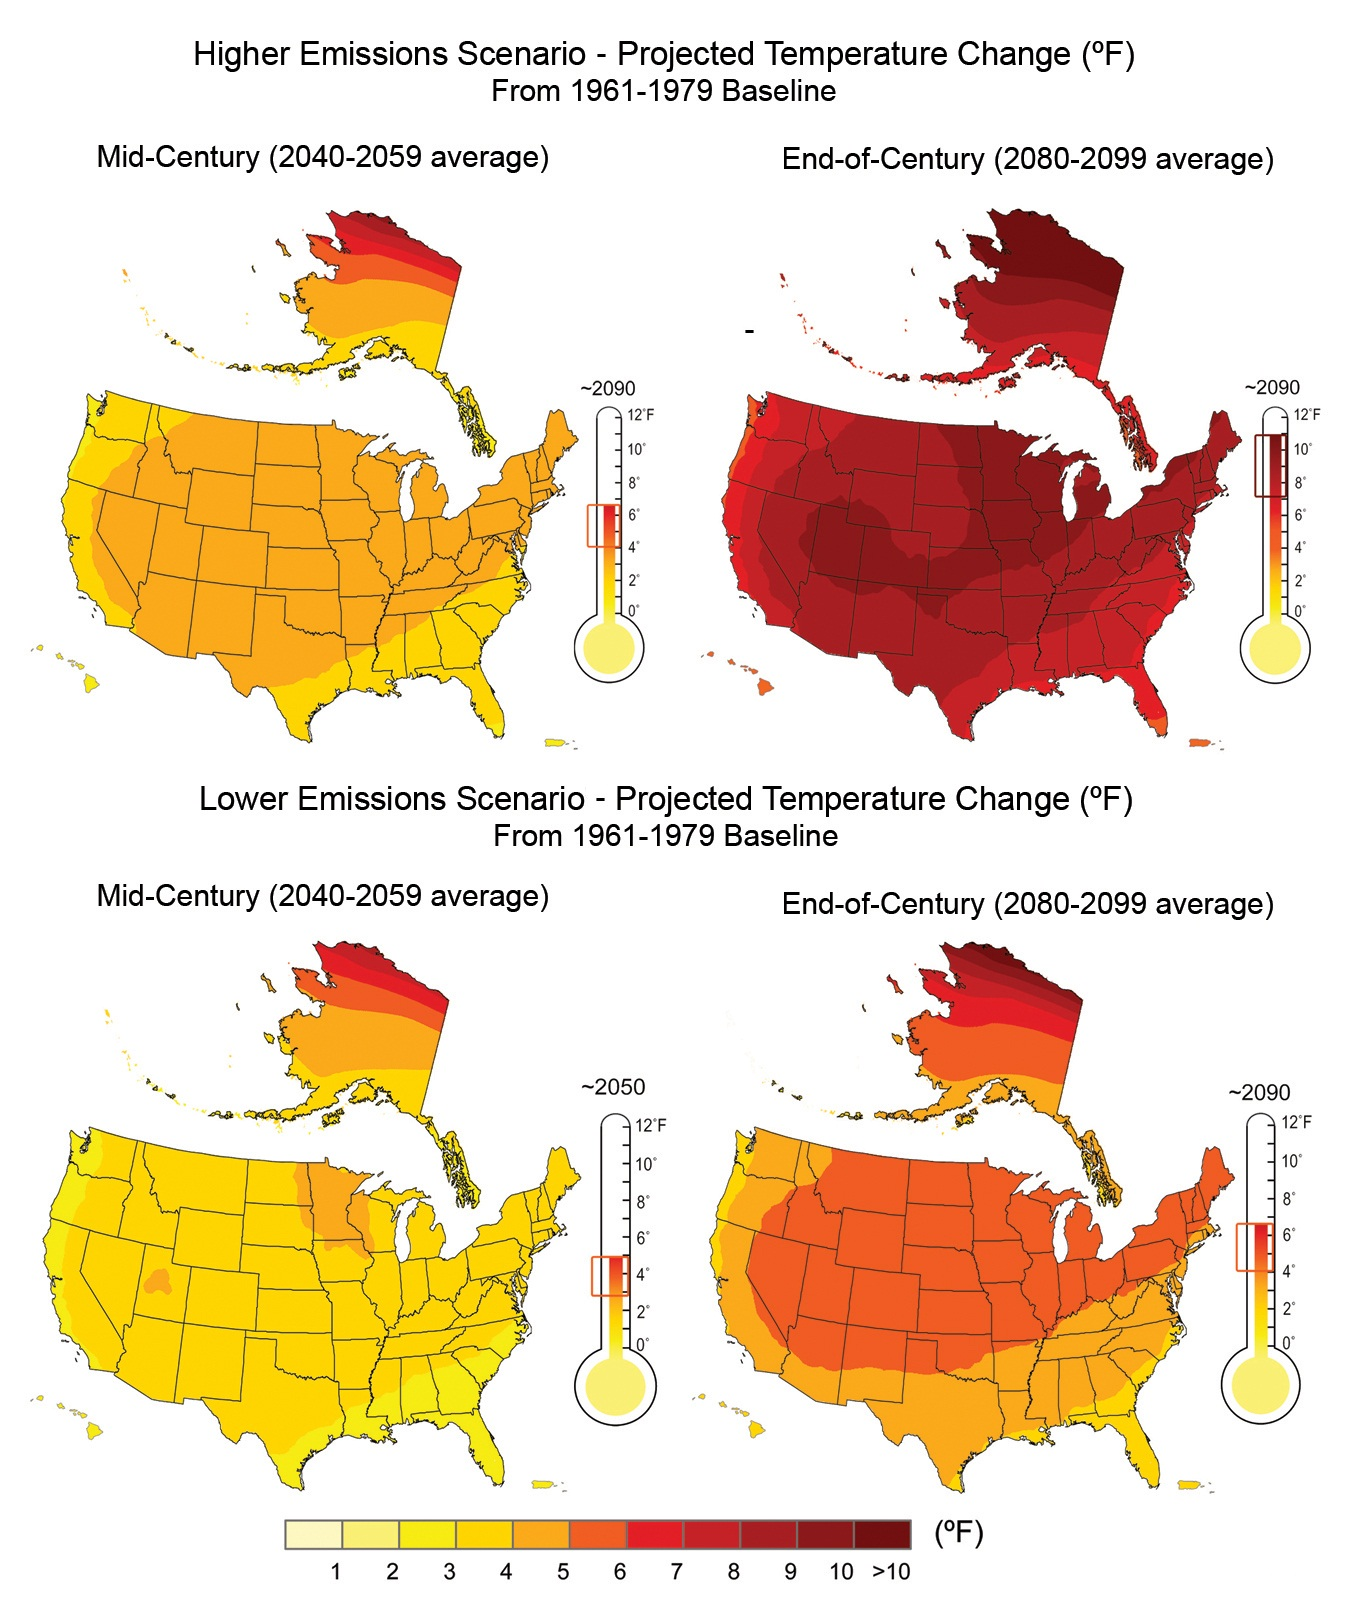 USGCRP http://globalchange.gov/HighResImages/2-National-pg-29.jpg Image shows a set of four maps of the United States that show projected temperature change. The top two maps show the projections under a higher emissions scenario and the bottom two maps show the projections under a lower emissions scenario. On the left, the two maps show mid-century projections with average increases for 2040 through 2059. The two mid-century maps are somewhat similar with temperature increases ranging from approximately three degrees in the continental U.S. and the tropical islands to five or six degrees Fahrenheit in northern Alaska. The contrast between the two emissions scenarios is much more drastic for the end-of-century projections, which show average projected temperature change for 2080 to 2099. Under the higher emissions scenario, the entire country is projected to experience an increase of approximately seven to ten degrees Fahrenheit increase. Conversely, under the lower emissions scenario, by the end of the century, the projected temperature increase is closer to four to six degrees Fahrenheit for the majority of the country. Alaska is projected to have a more significant increase in temperature, but the increase is less under the lower emissions scenario. Overall, the divergence between the lower and higher emissions scenarios increases over time.